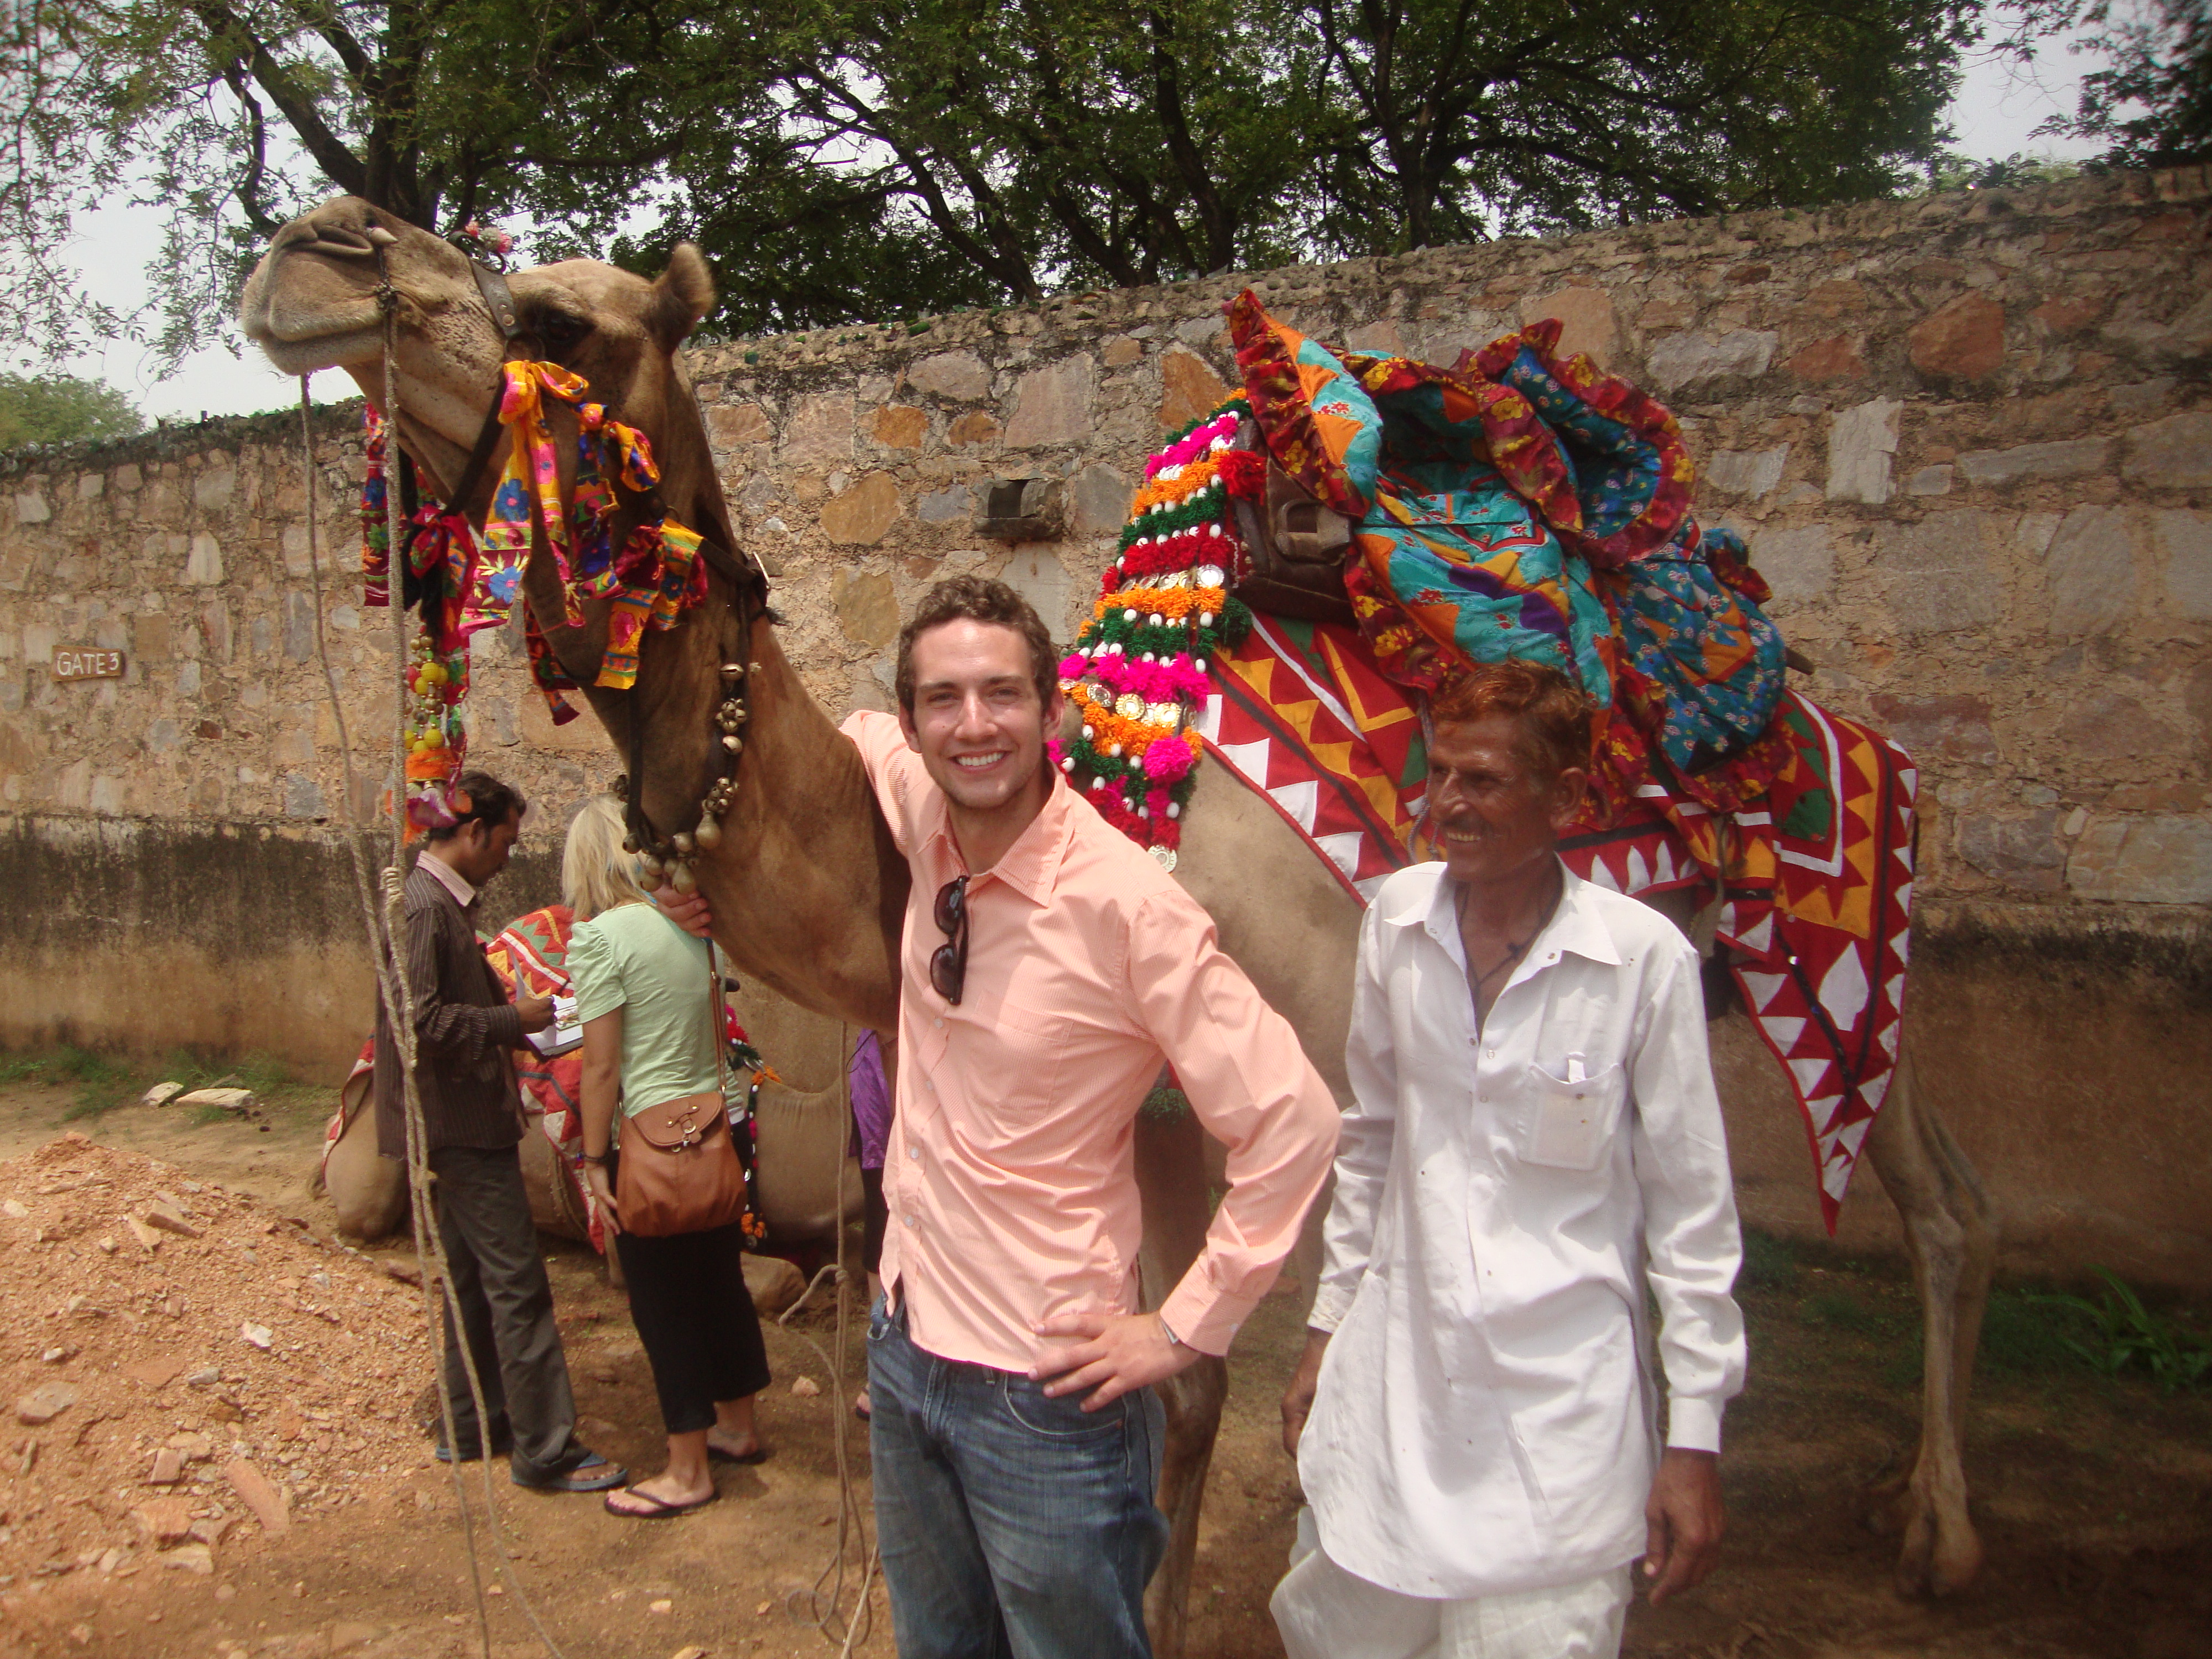 Ryan Moran stands next to a camel outside of Jaipur in Rajasthan, India.